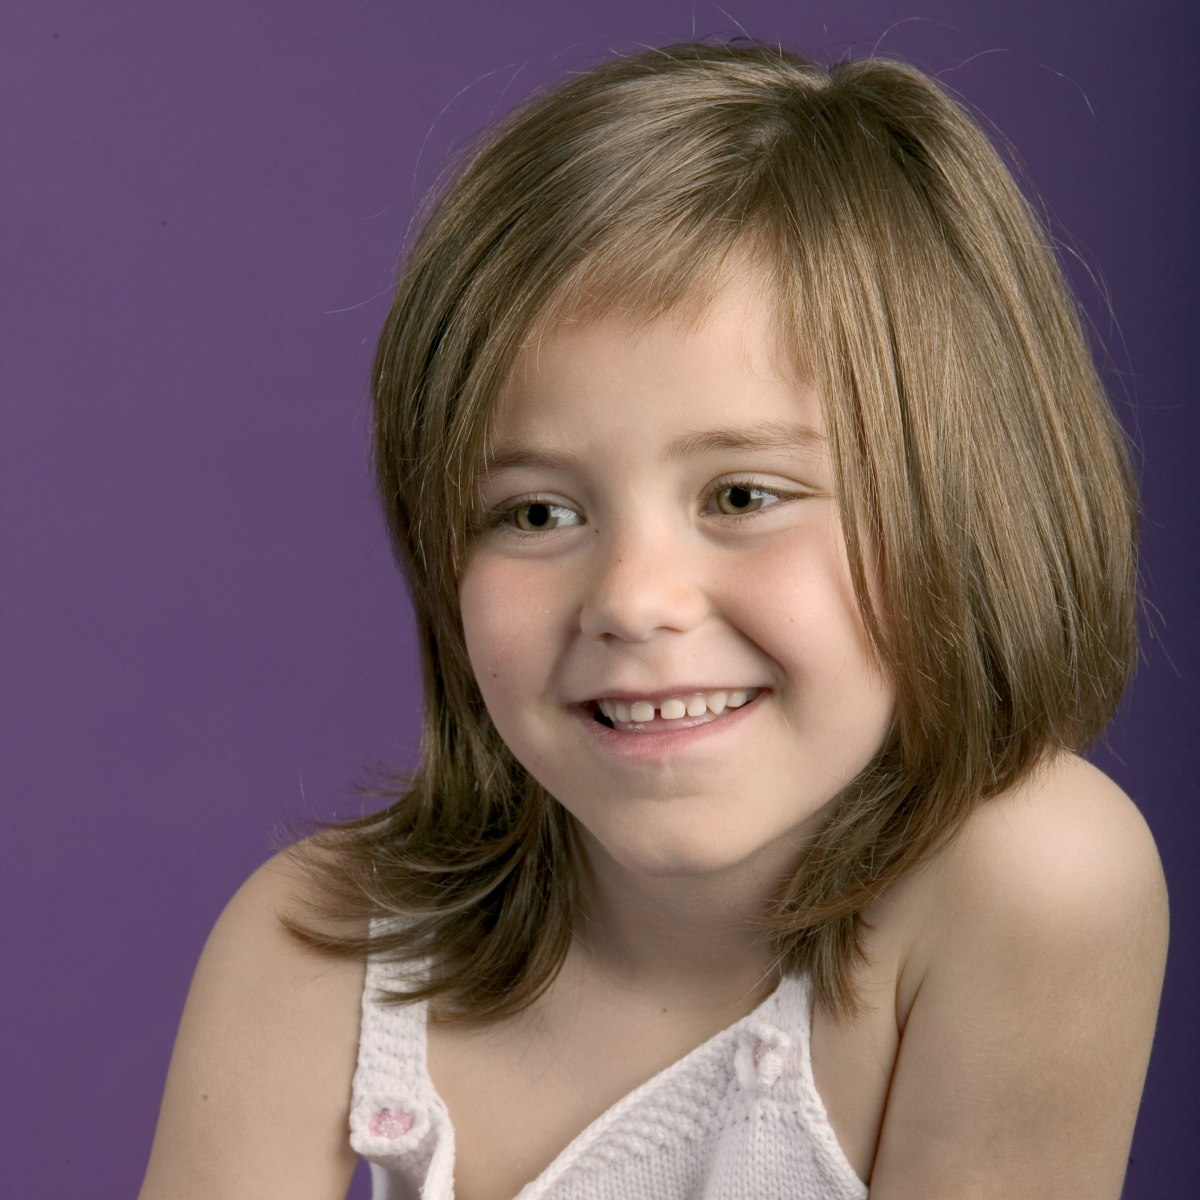 modern hairstyle for young girls with hair falling to chin level